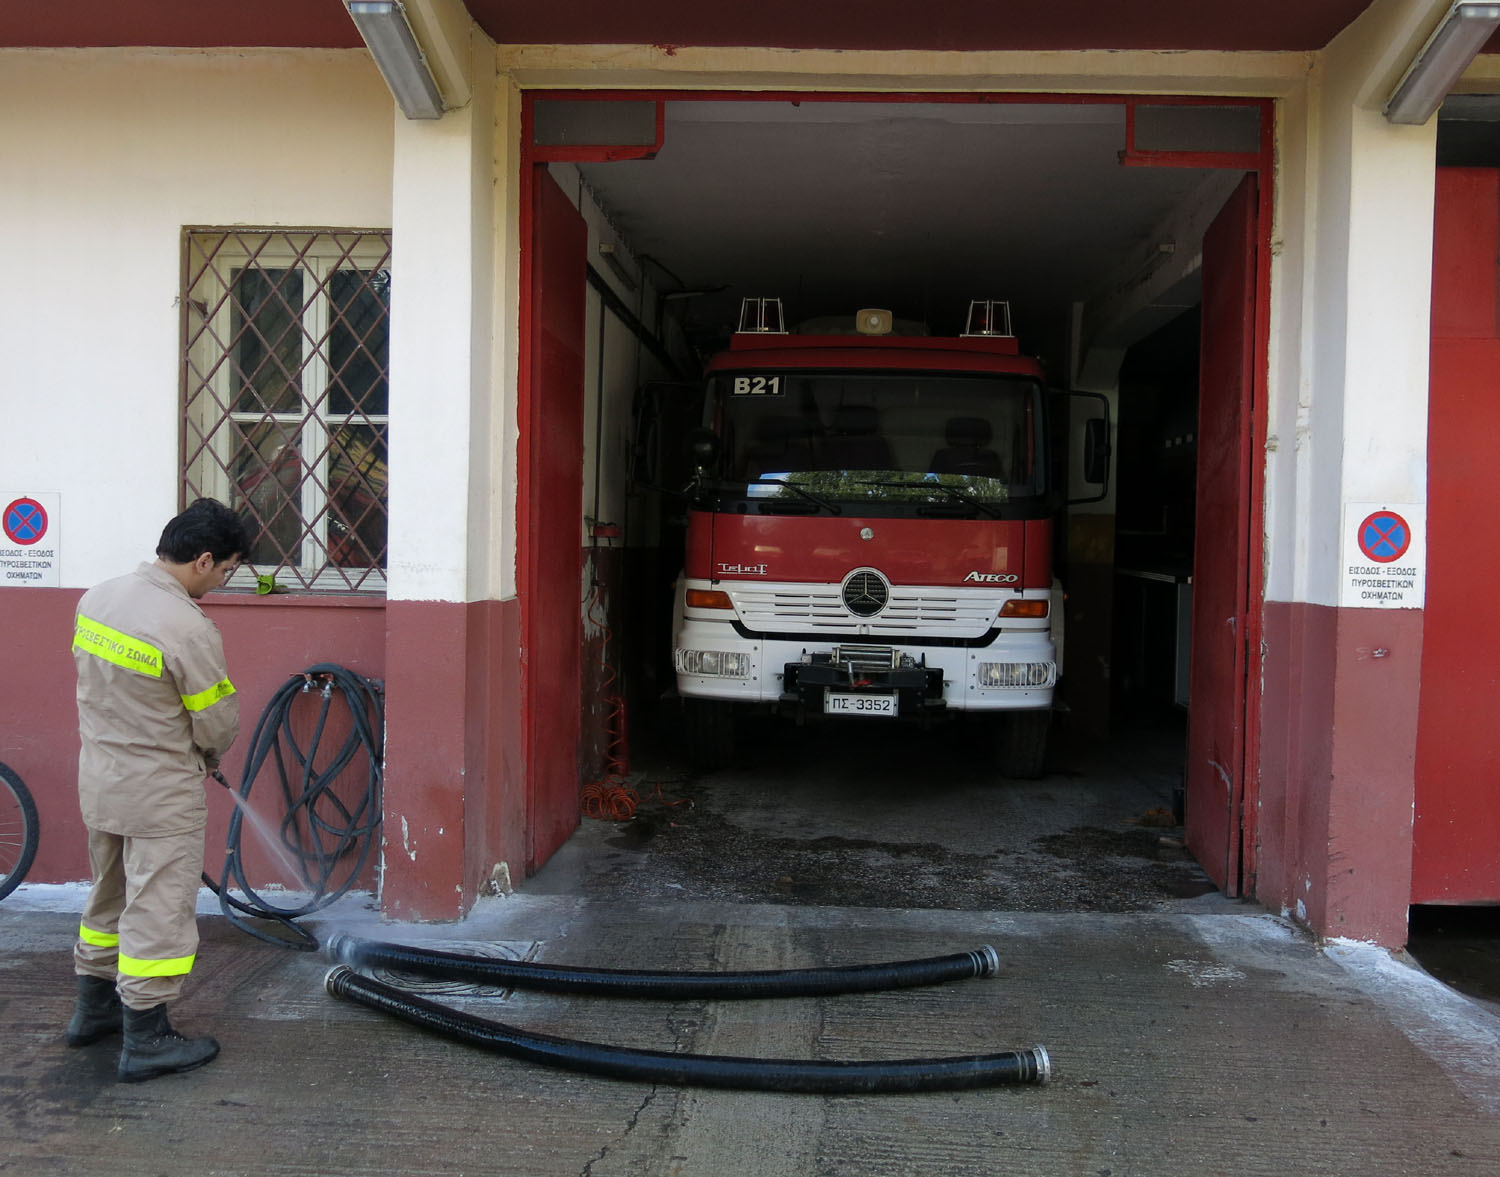 Greece-Nafplio-Fire-Station